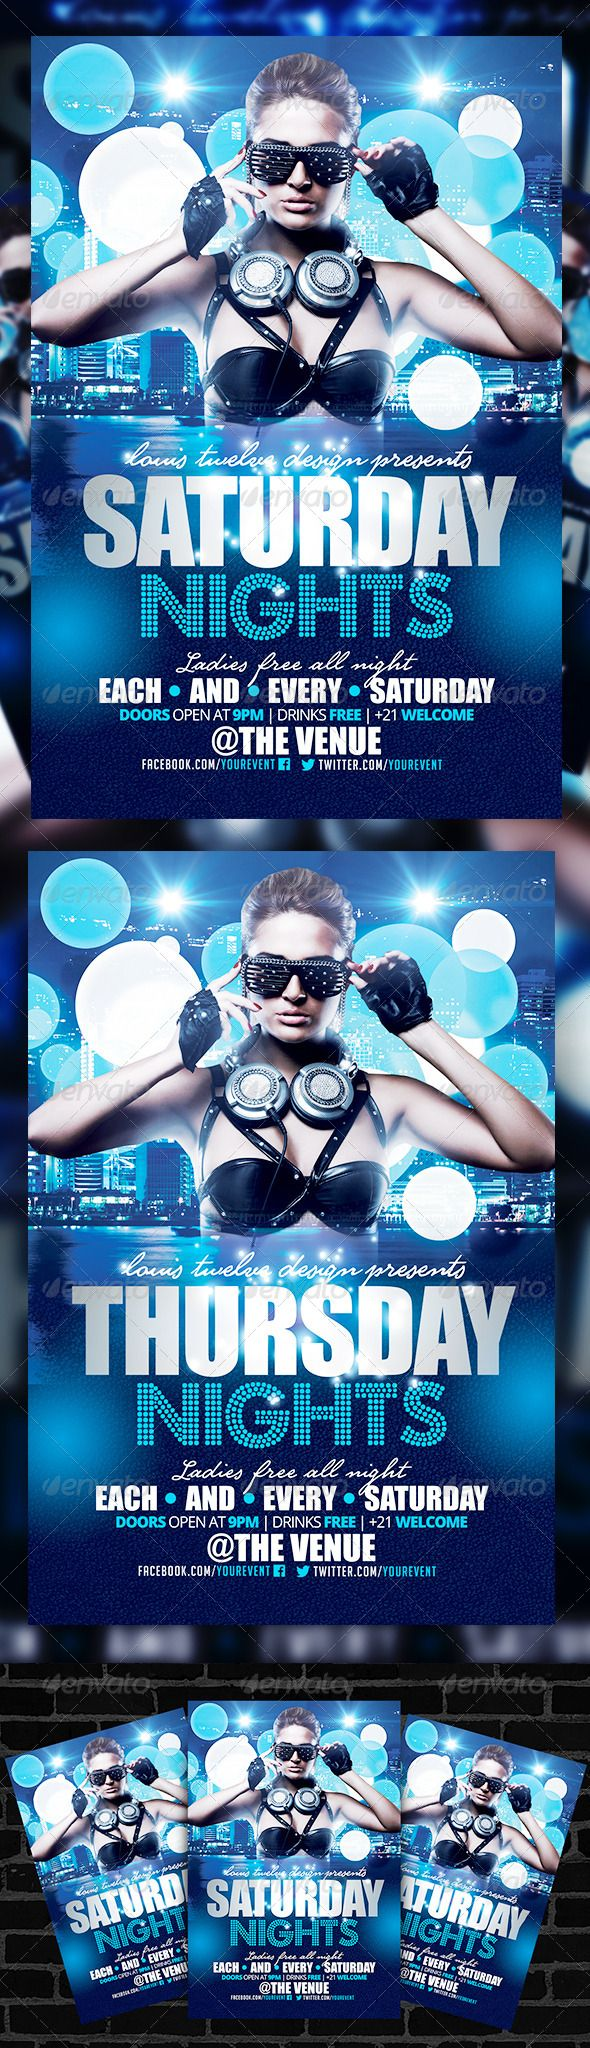 17 best images about flyers template saturday night saturday nights flyer template